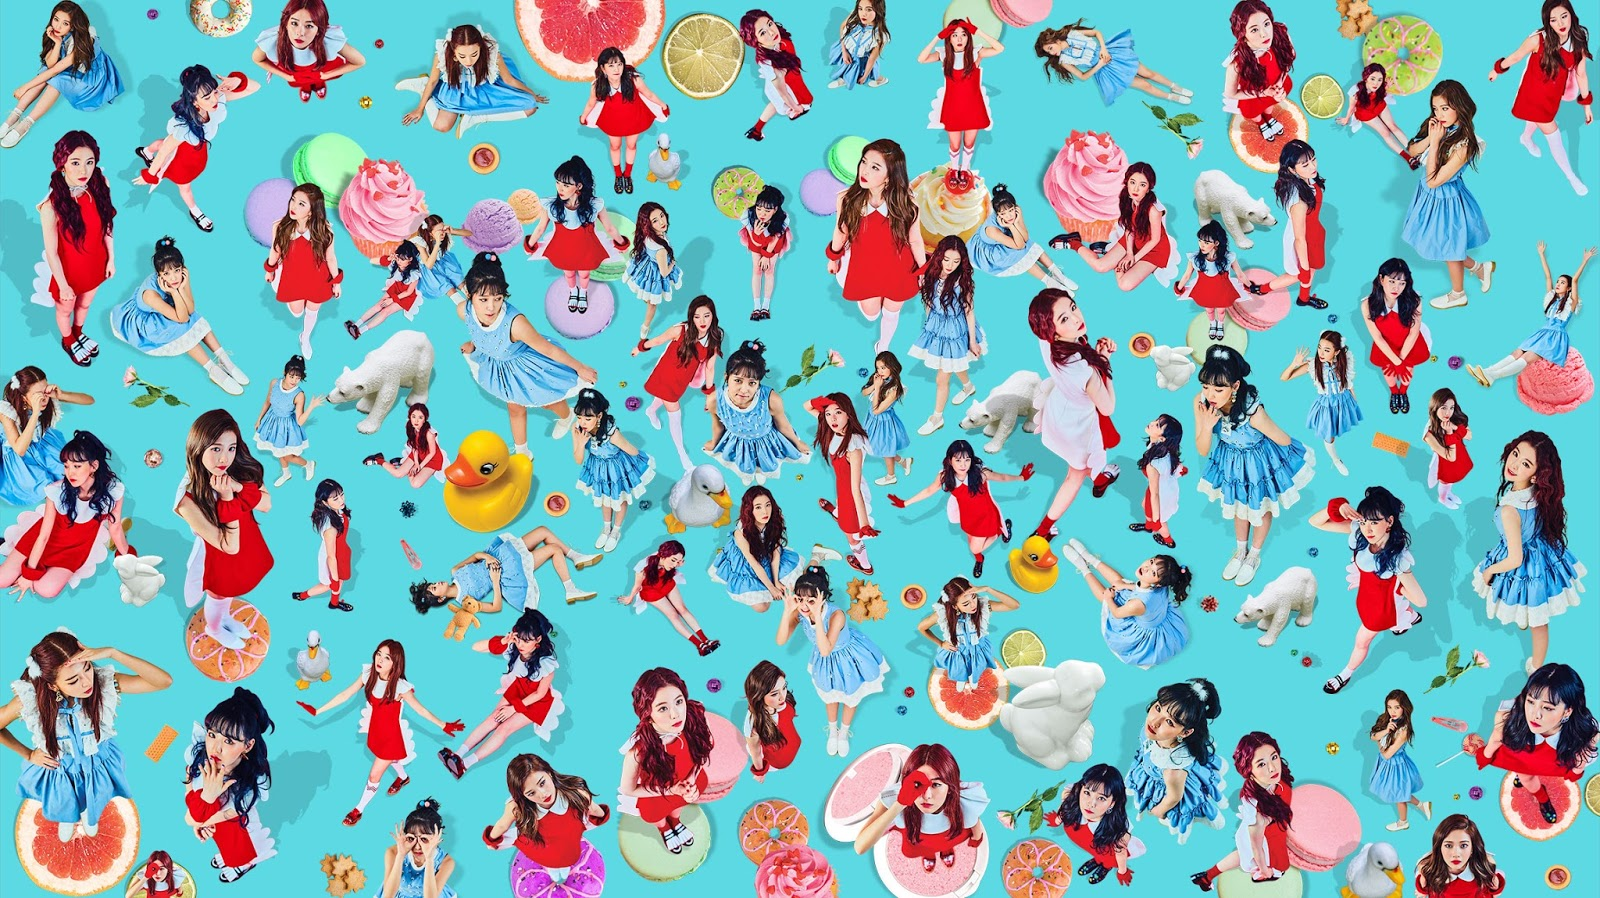 Full Hq Red Velvet Members Teaser Images For Rookie Hq Kpop Photos